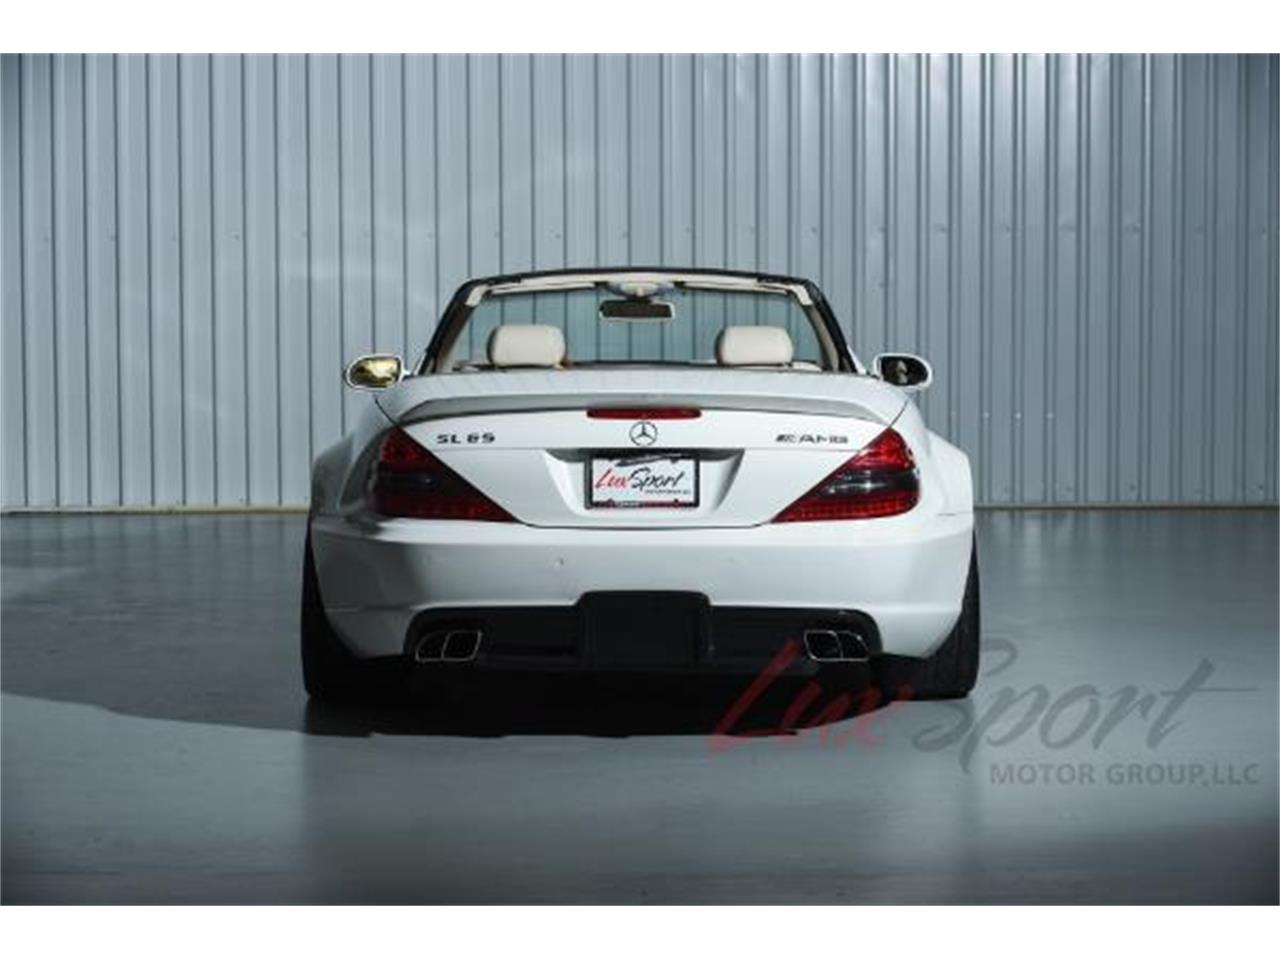 Large Picture of 2003 Mercedes-Benz SL500 - $39,995.00 Offered by LuxSport Motor Group, LLC - MO0A